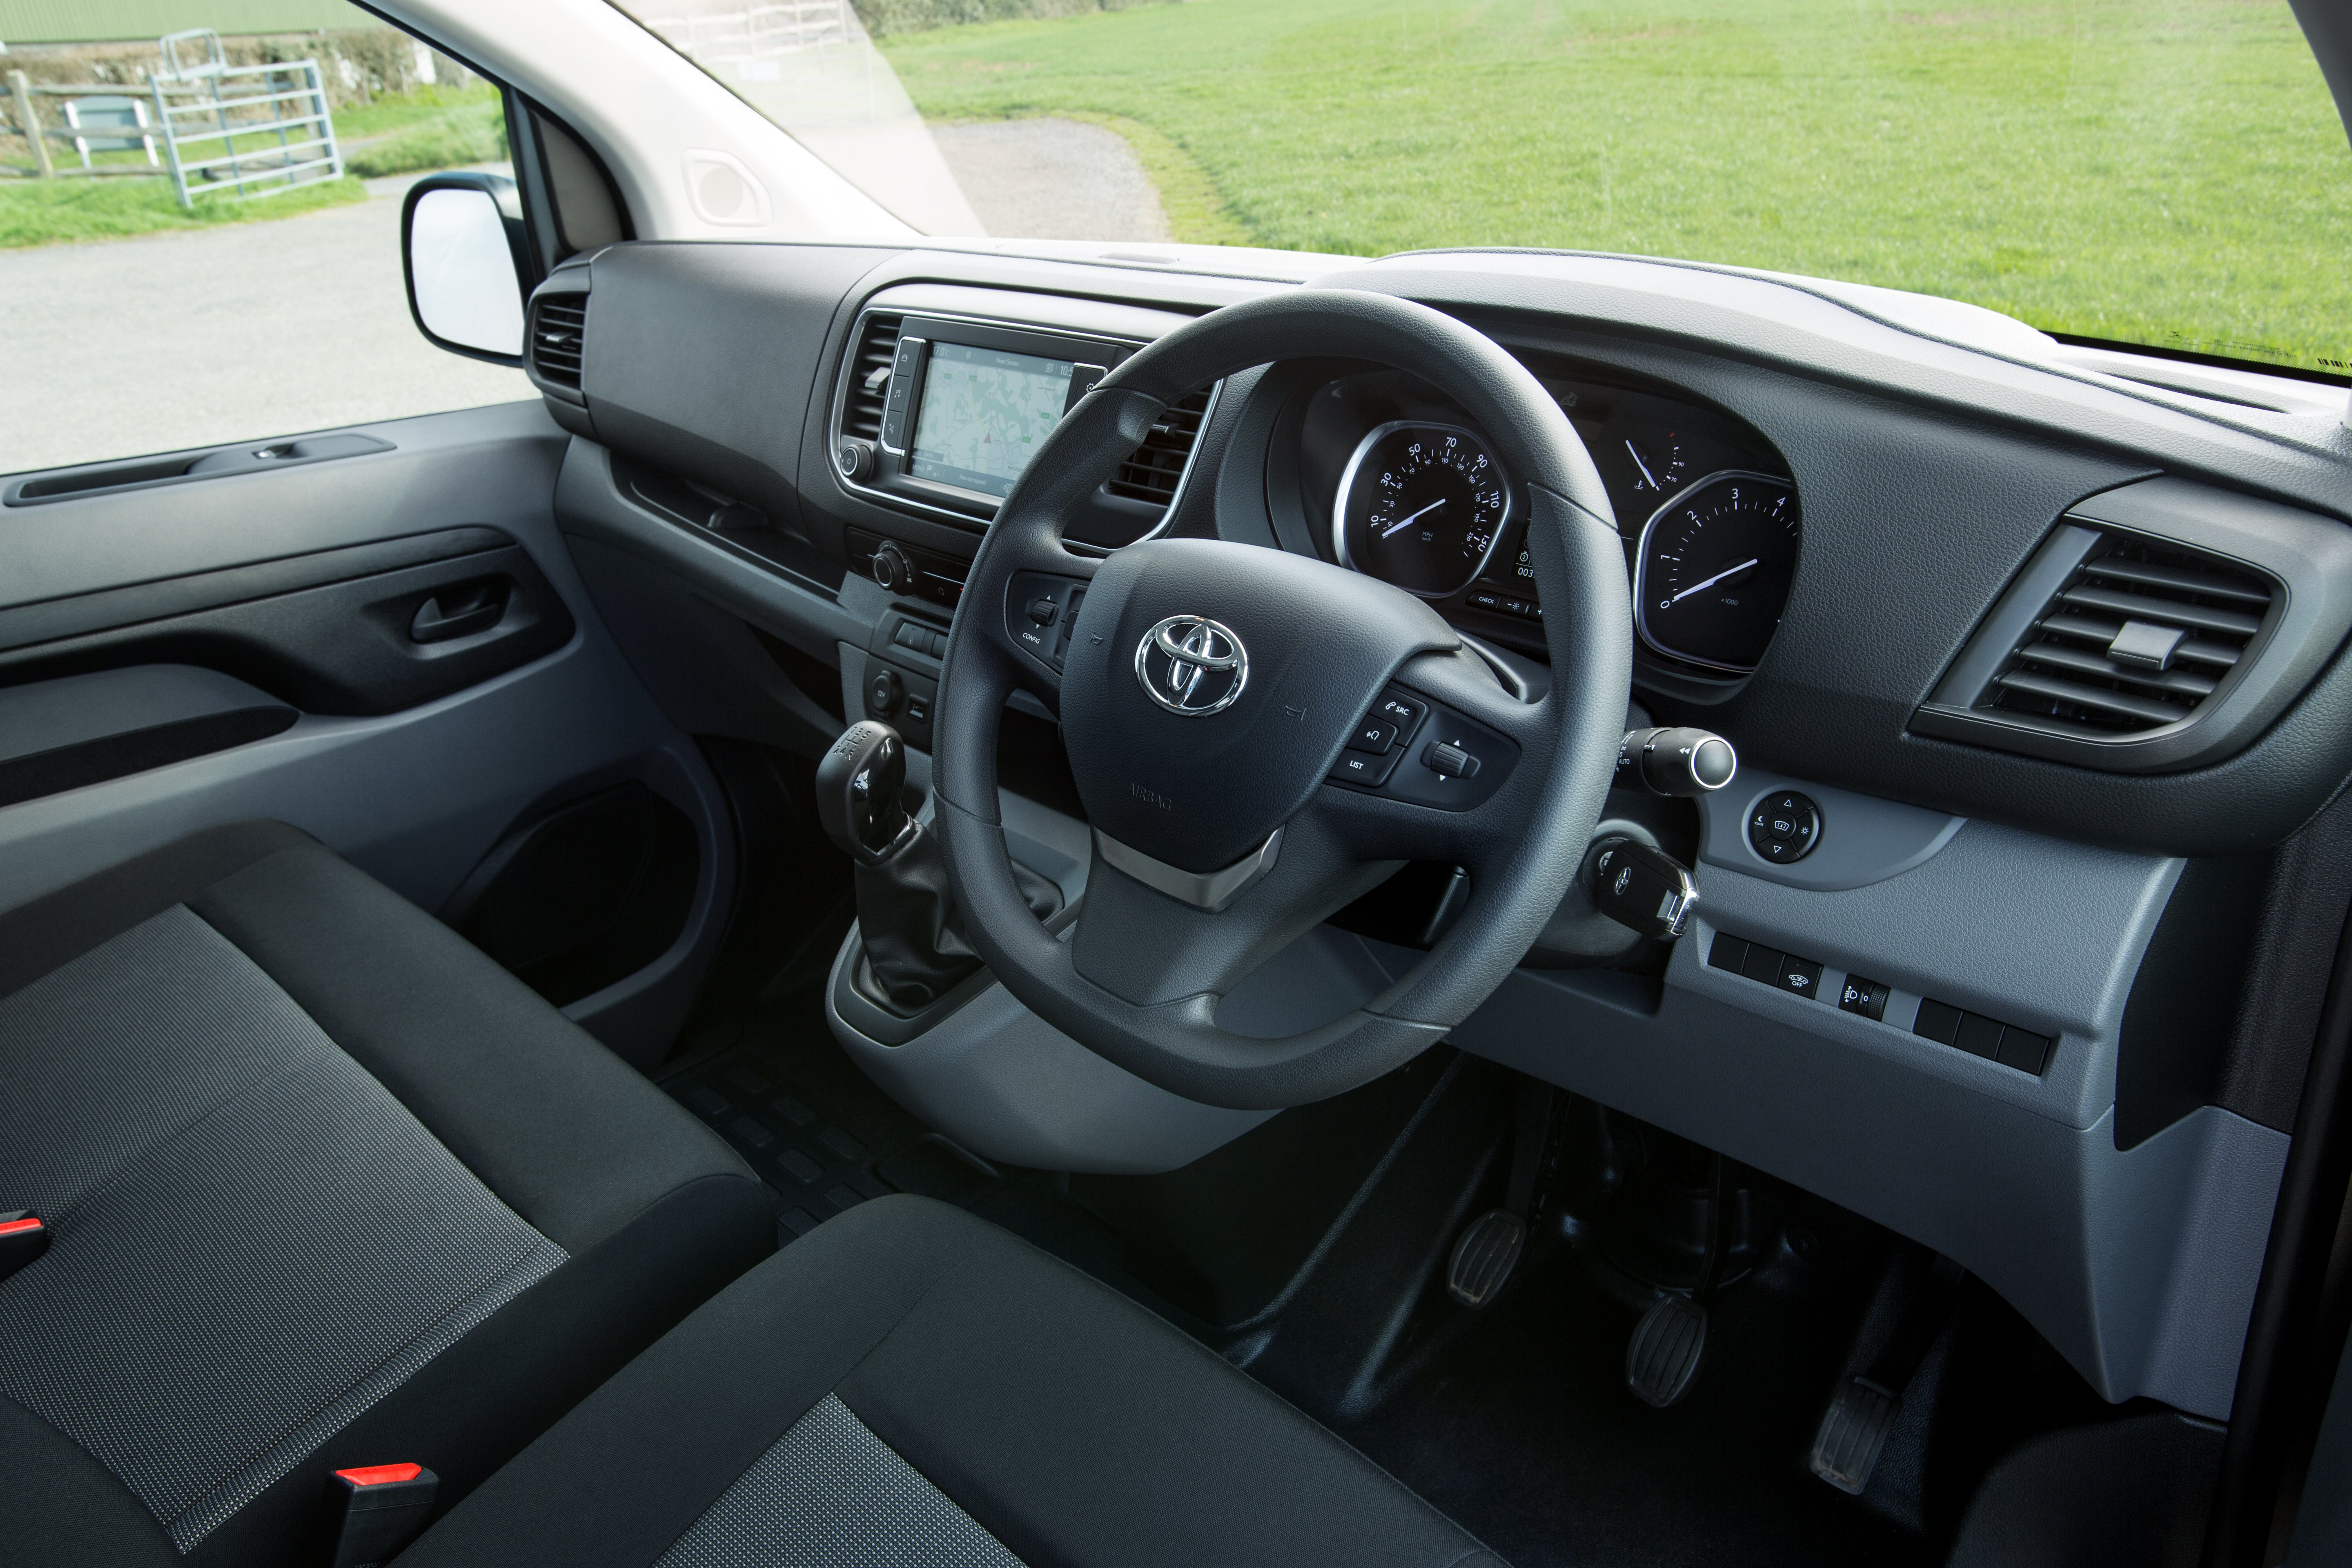 Toyota Proace Front Interior